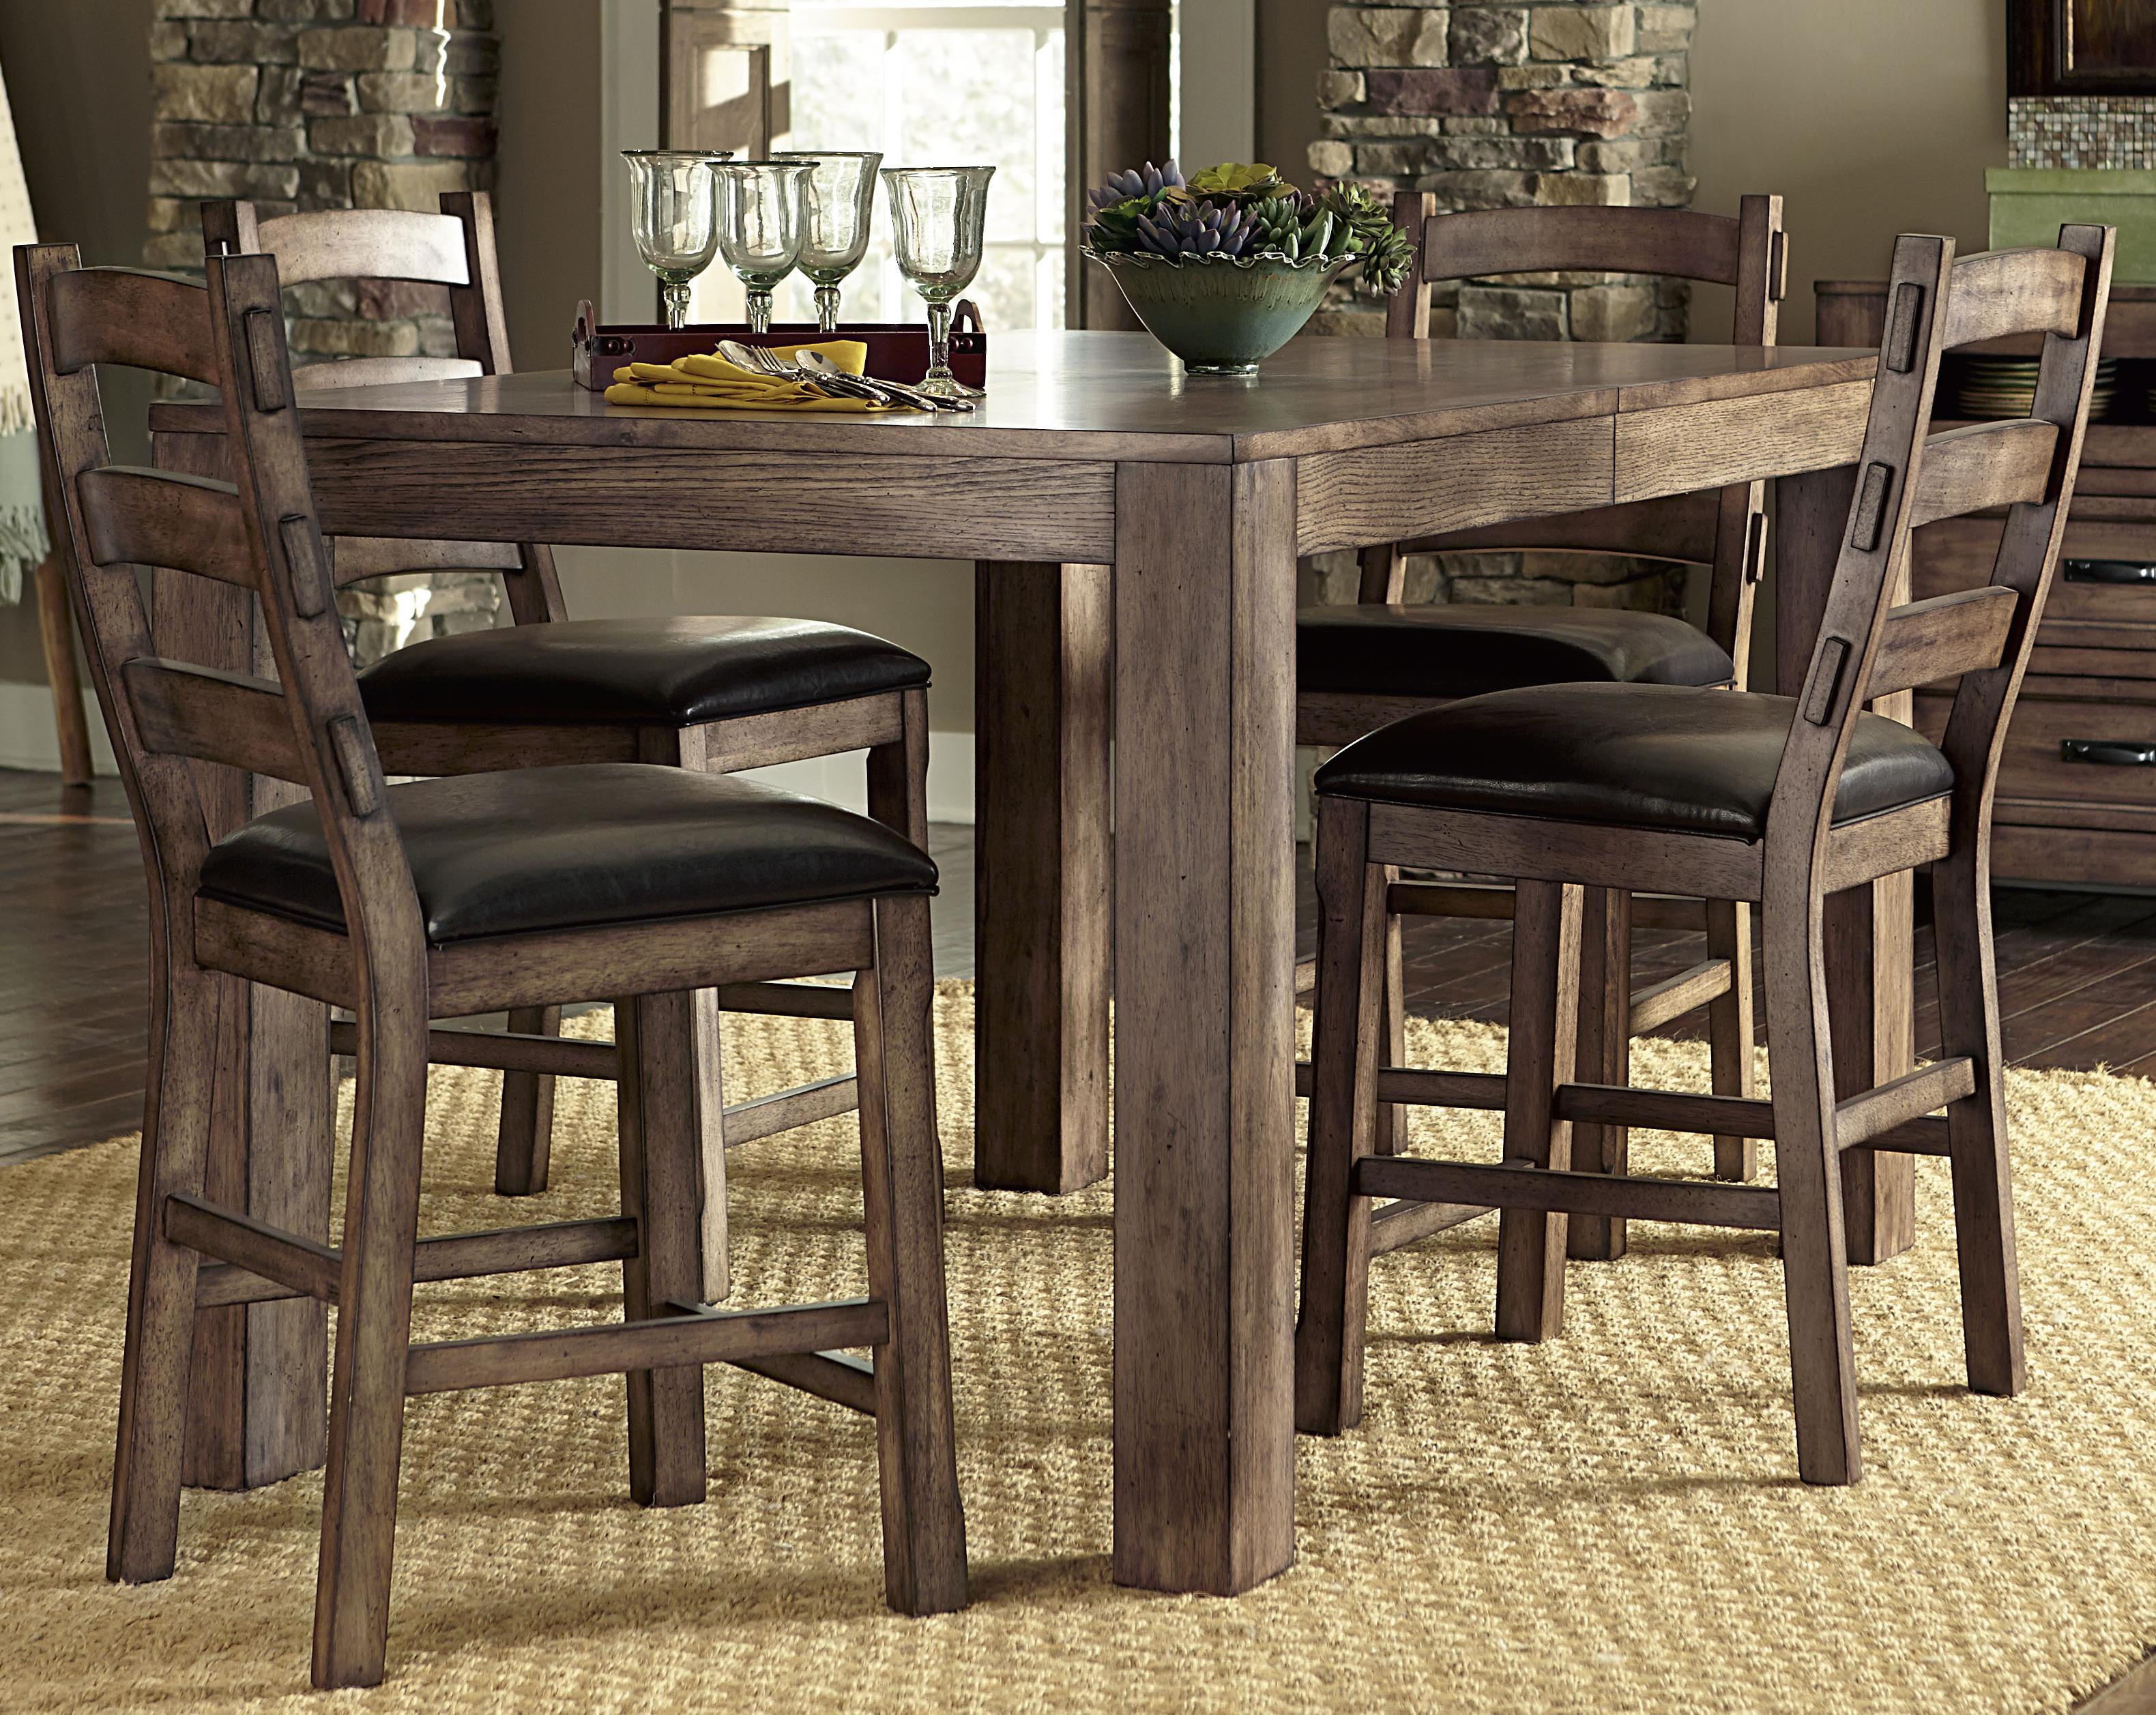 Progressive Furniture Boulder Creek Counter Dining Table and Chair Set - Item Number: P849-12B+12T+4x63